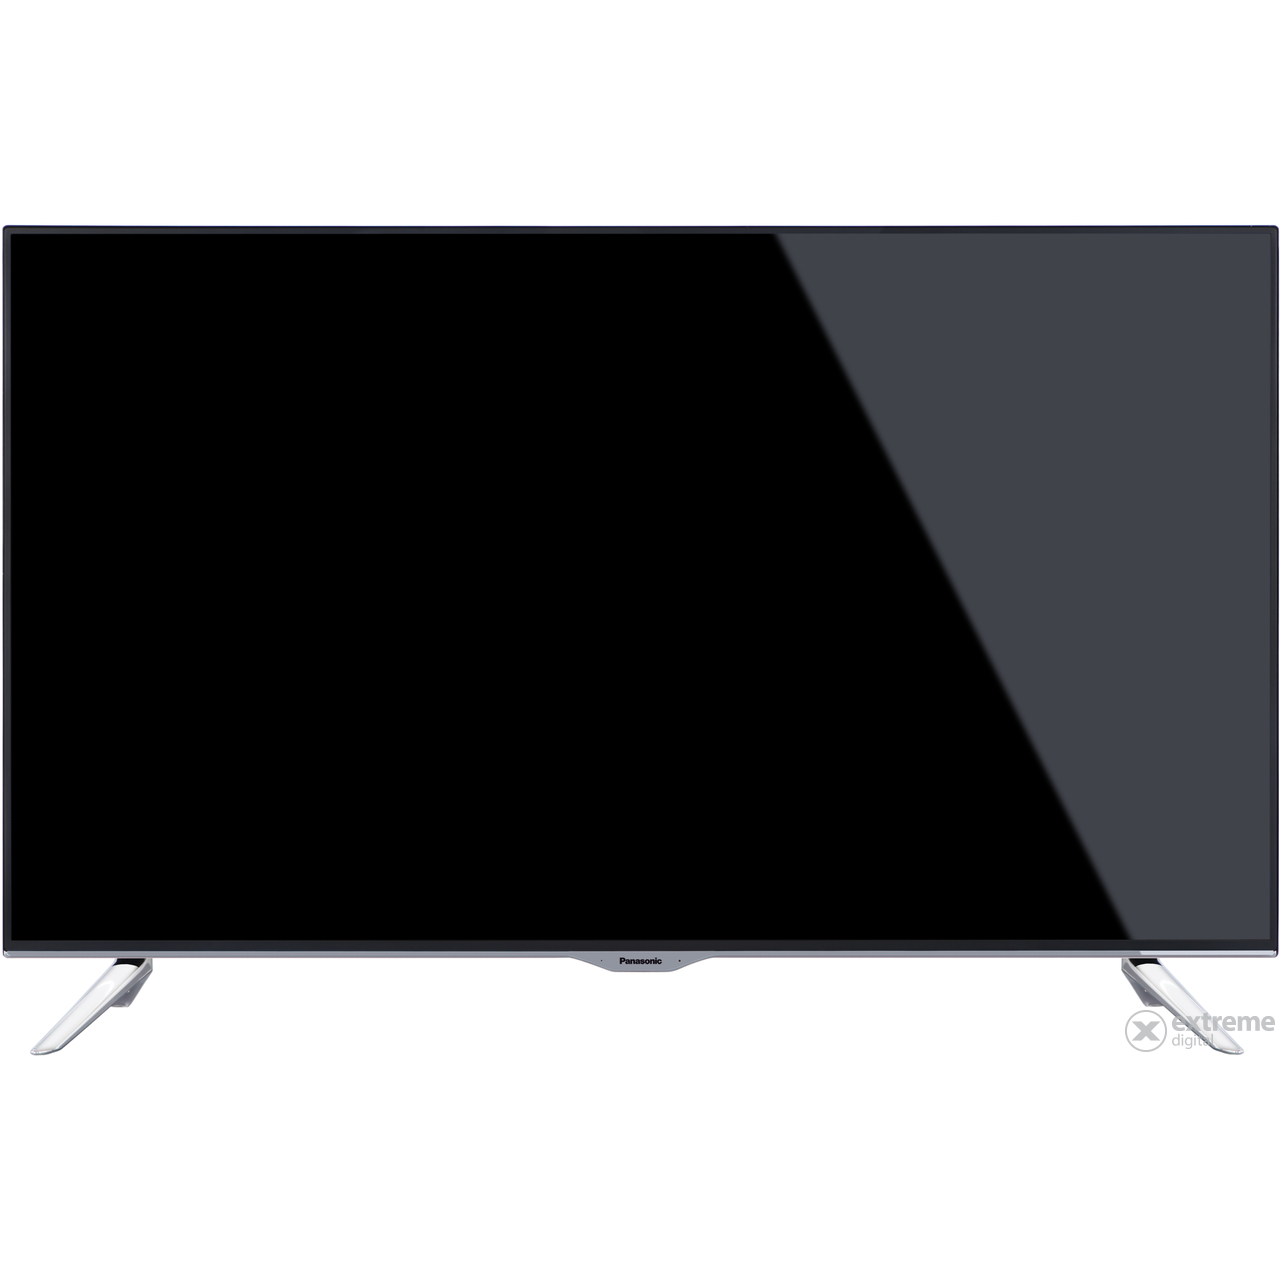 panasonic-tx-48cx400e-uhd-3d-smart-led-televizio_b98cd86b.jpg